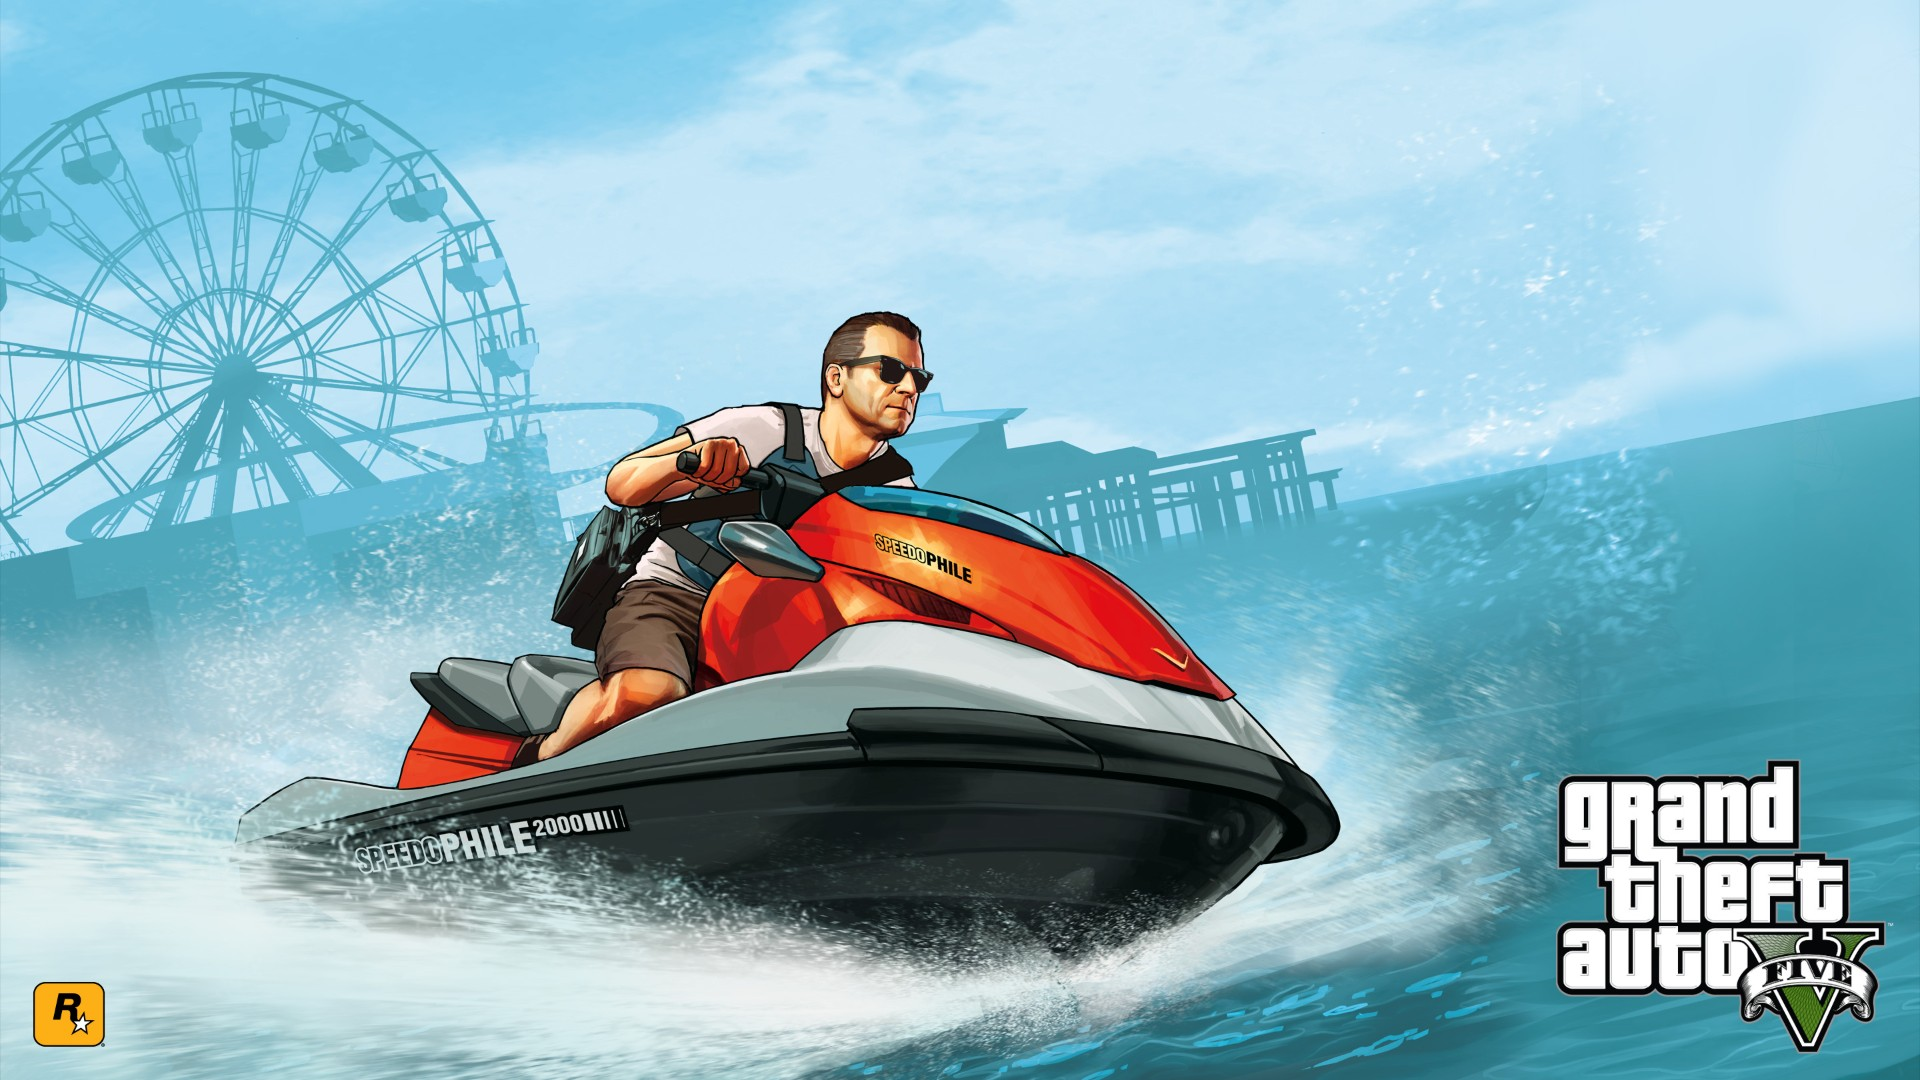 How to get 'GTA V' for free: Epic Games Store status, error code fix